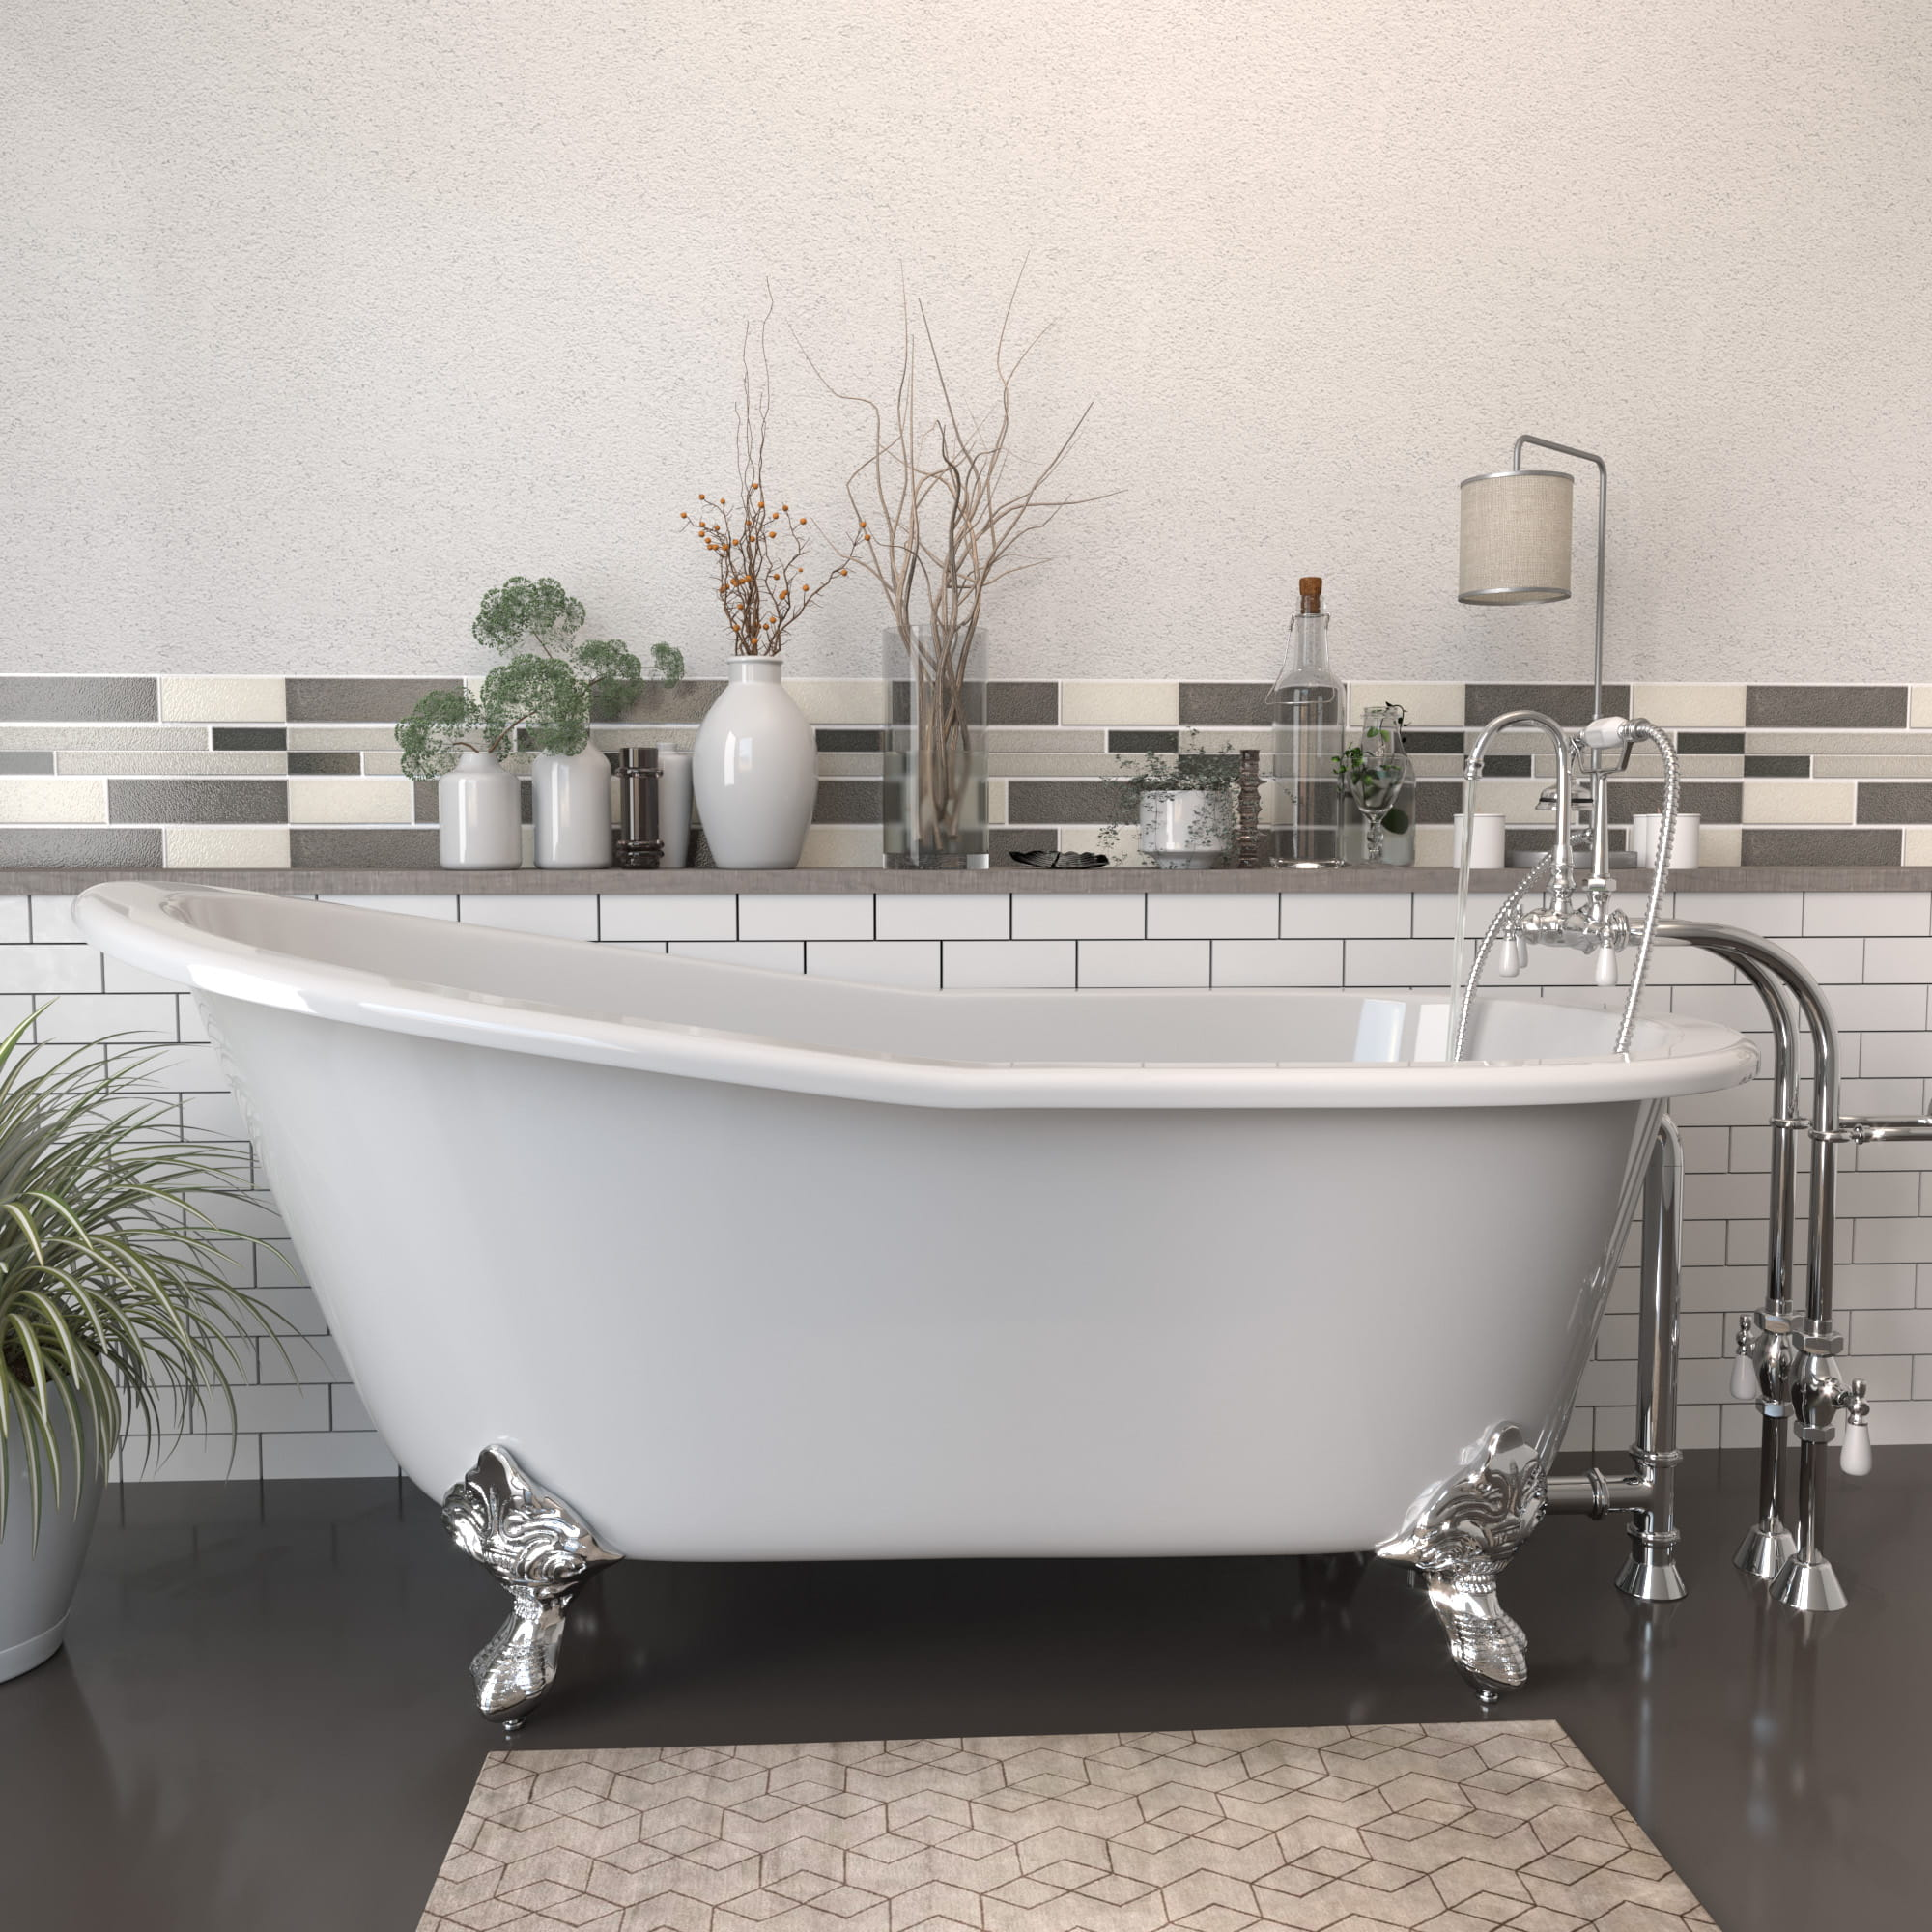 """Cast Iron Slipper Clawfoot Tub 67"""" X 30"""" with no Faucet Drillings and Complete Polished Chrome Free Standing English Telephone Style Faucet with Hand Held Shower Assembly Plumbing Package"""